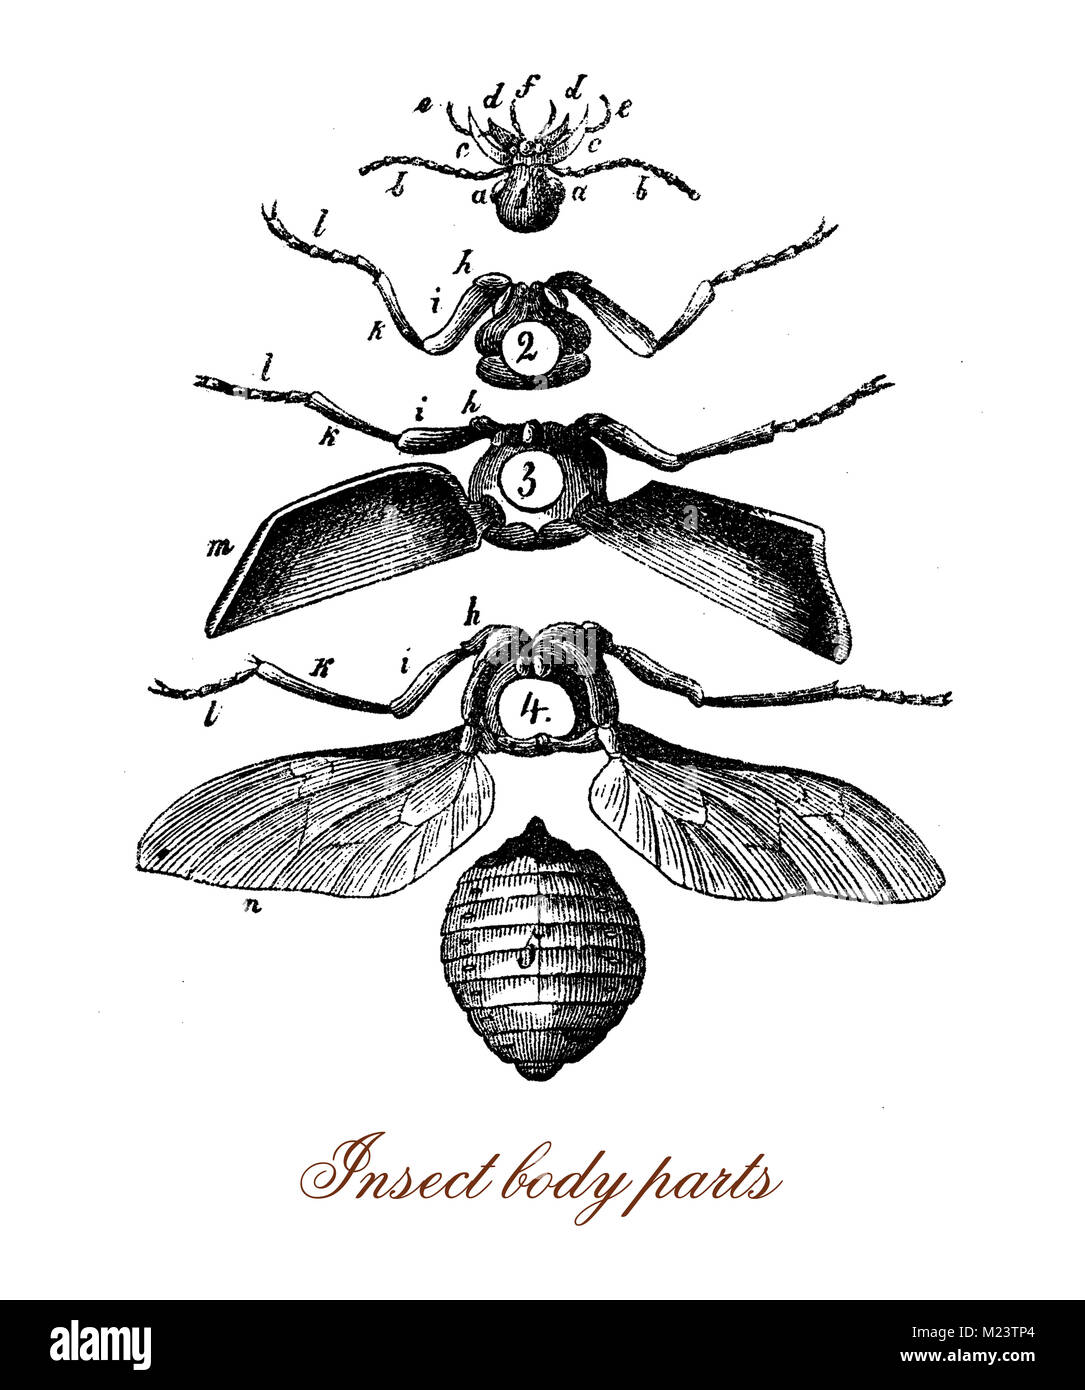 Insect body parts, vintage illustration - Stock Image